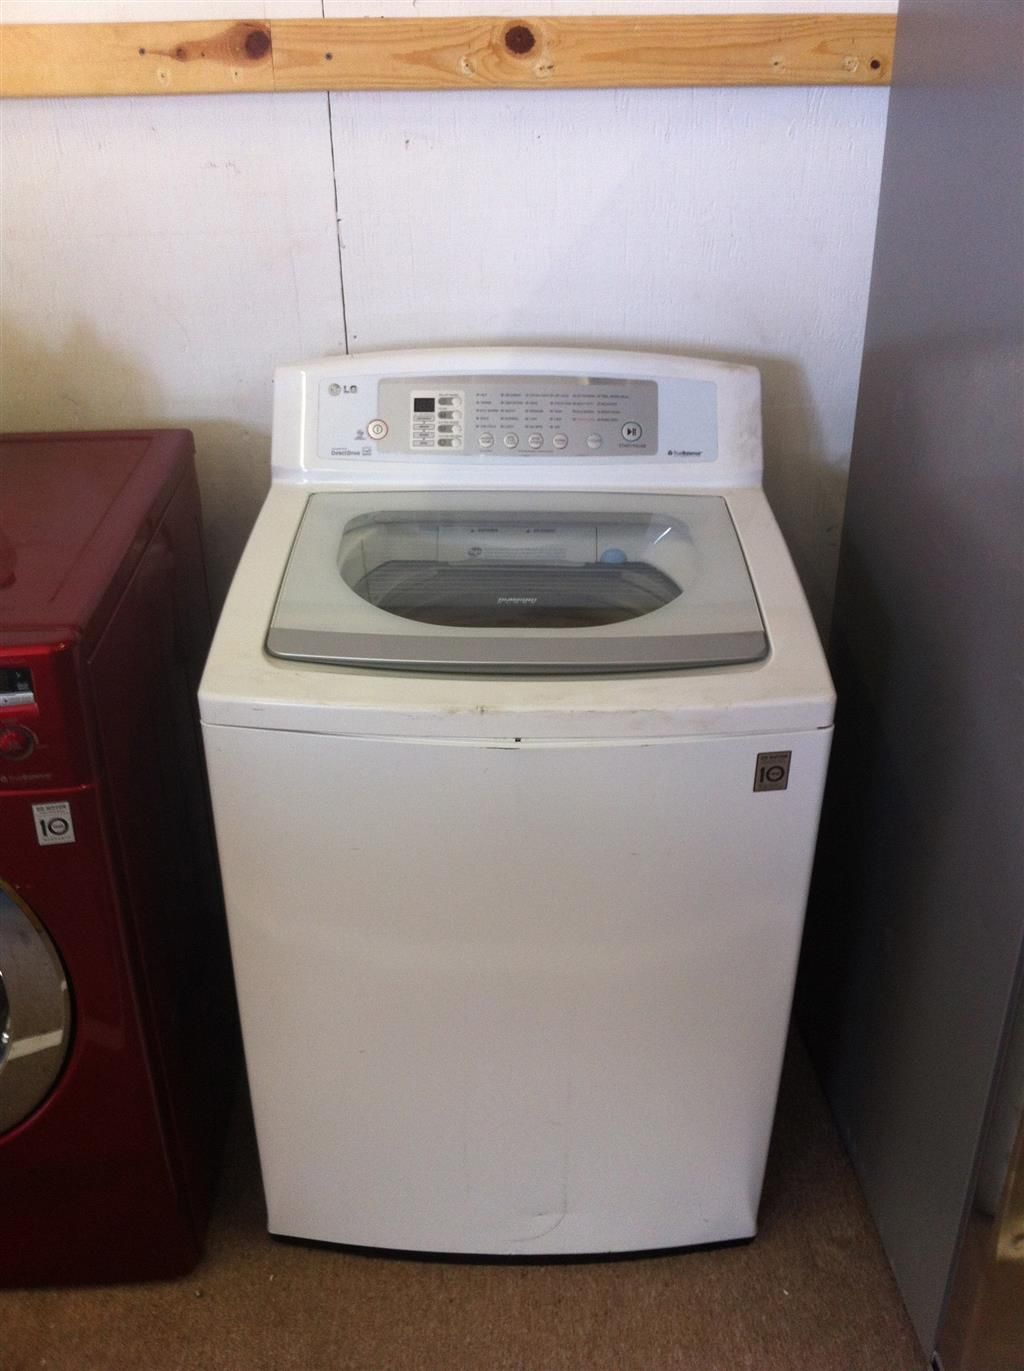 New LG White 3.7 cu. ft. Large Capacity High Efficiency Top Load Washer